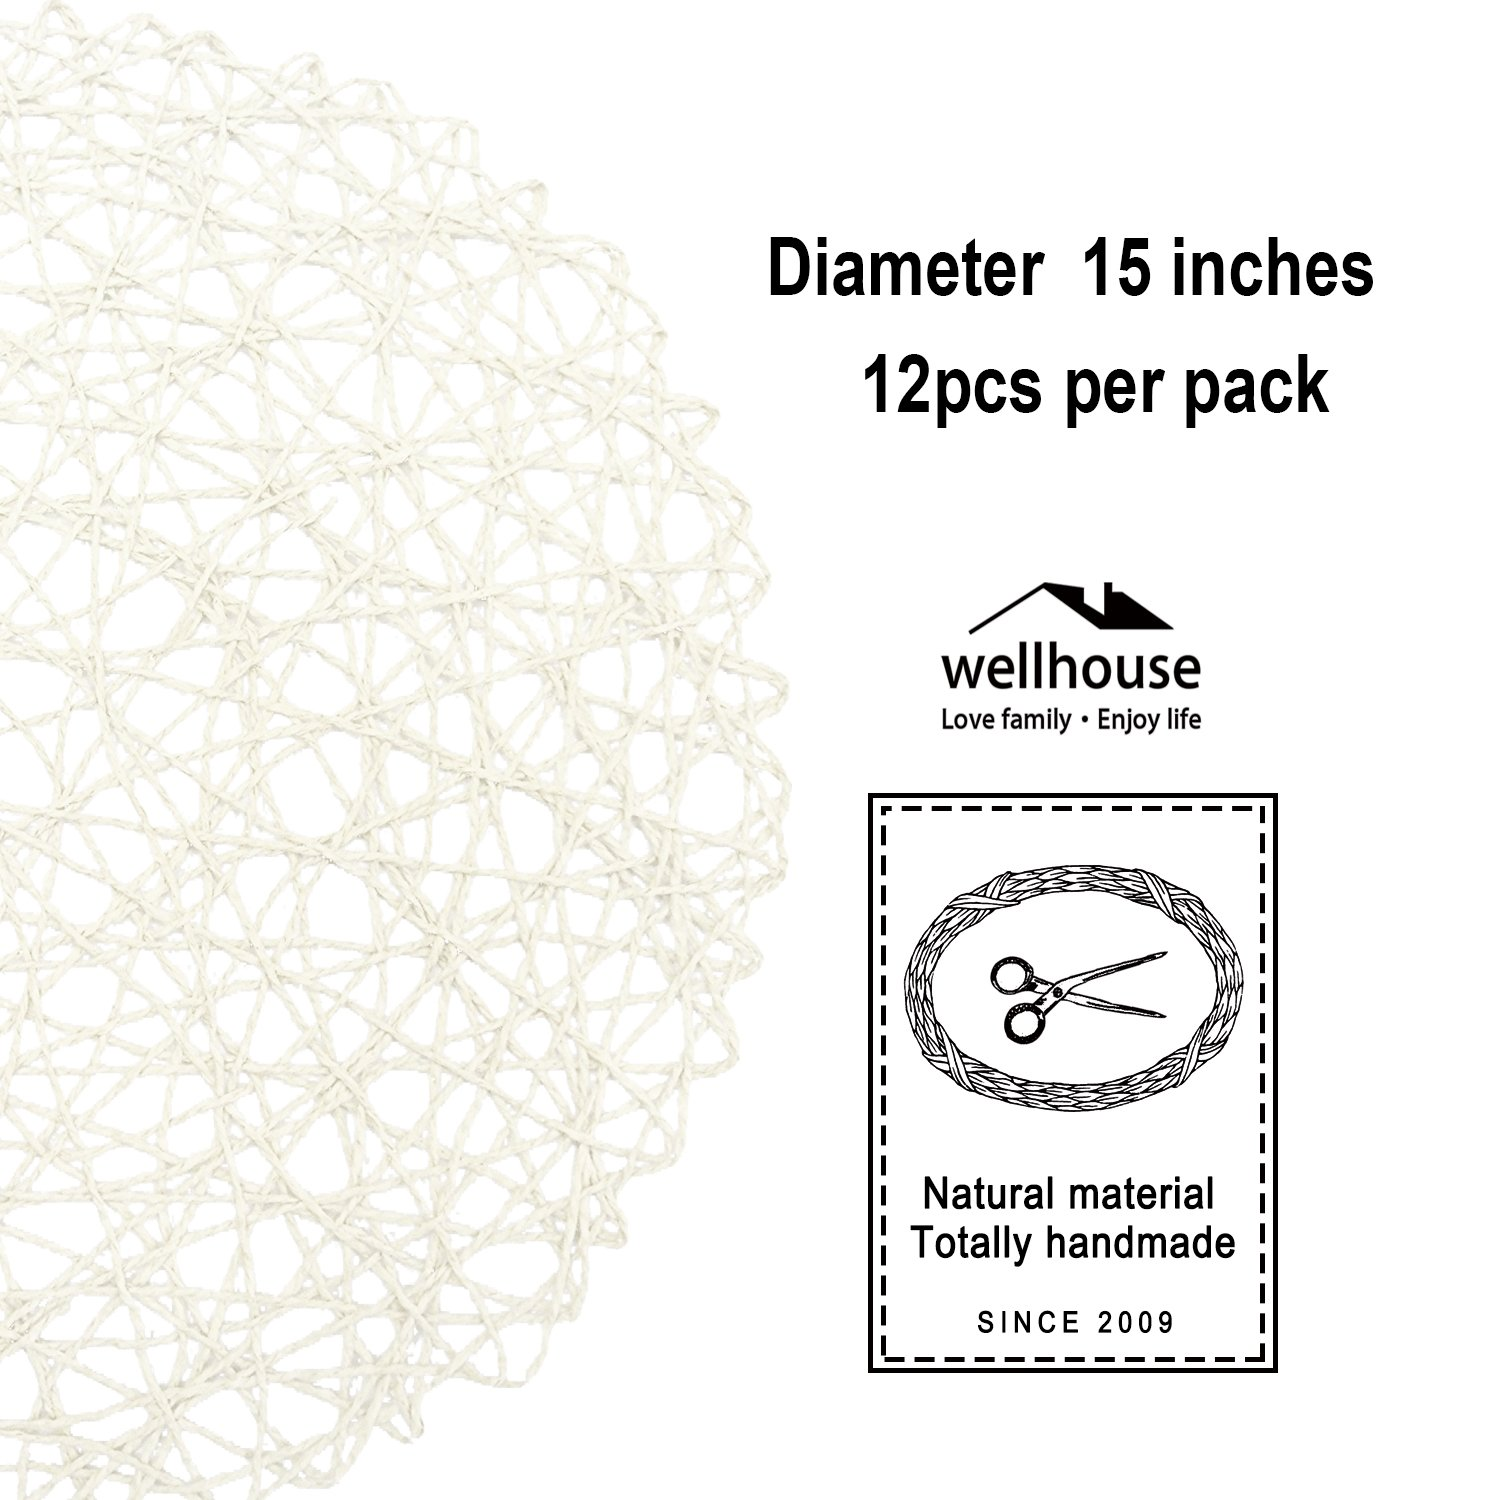 wellhouse Round Woven Place Mats Paper Fiber Hollow Decorative Placemat Ding Room Decor 12 Pieces (White) by wellhouse (Image #2)